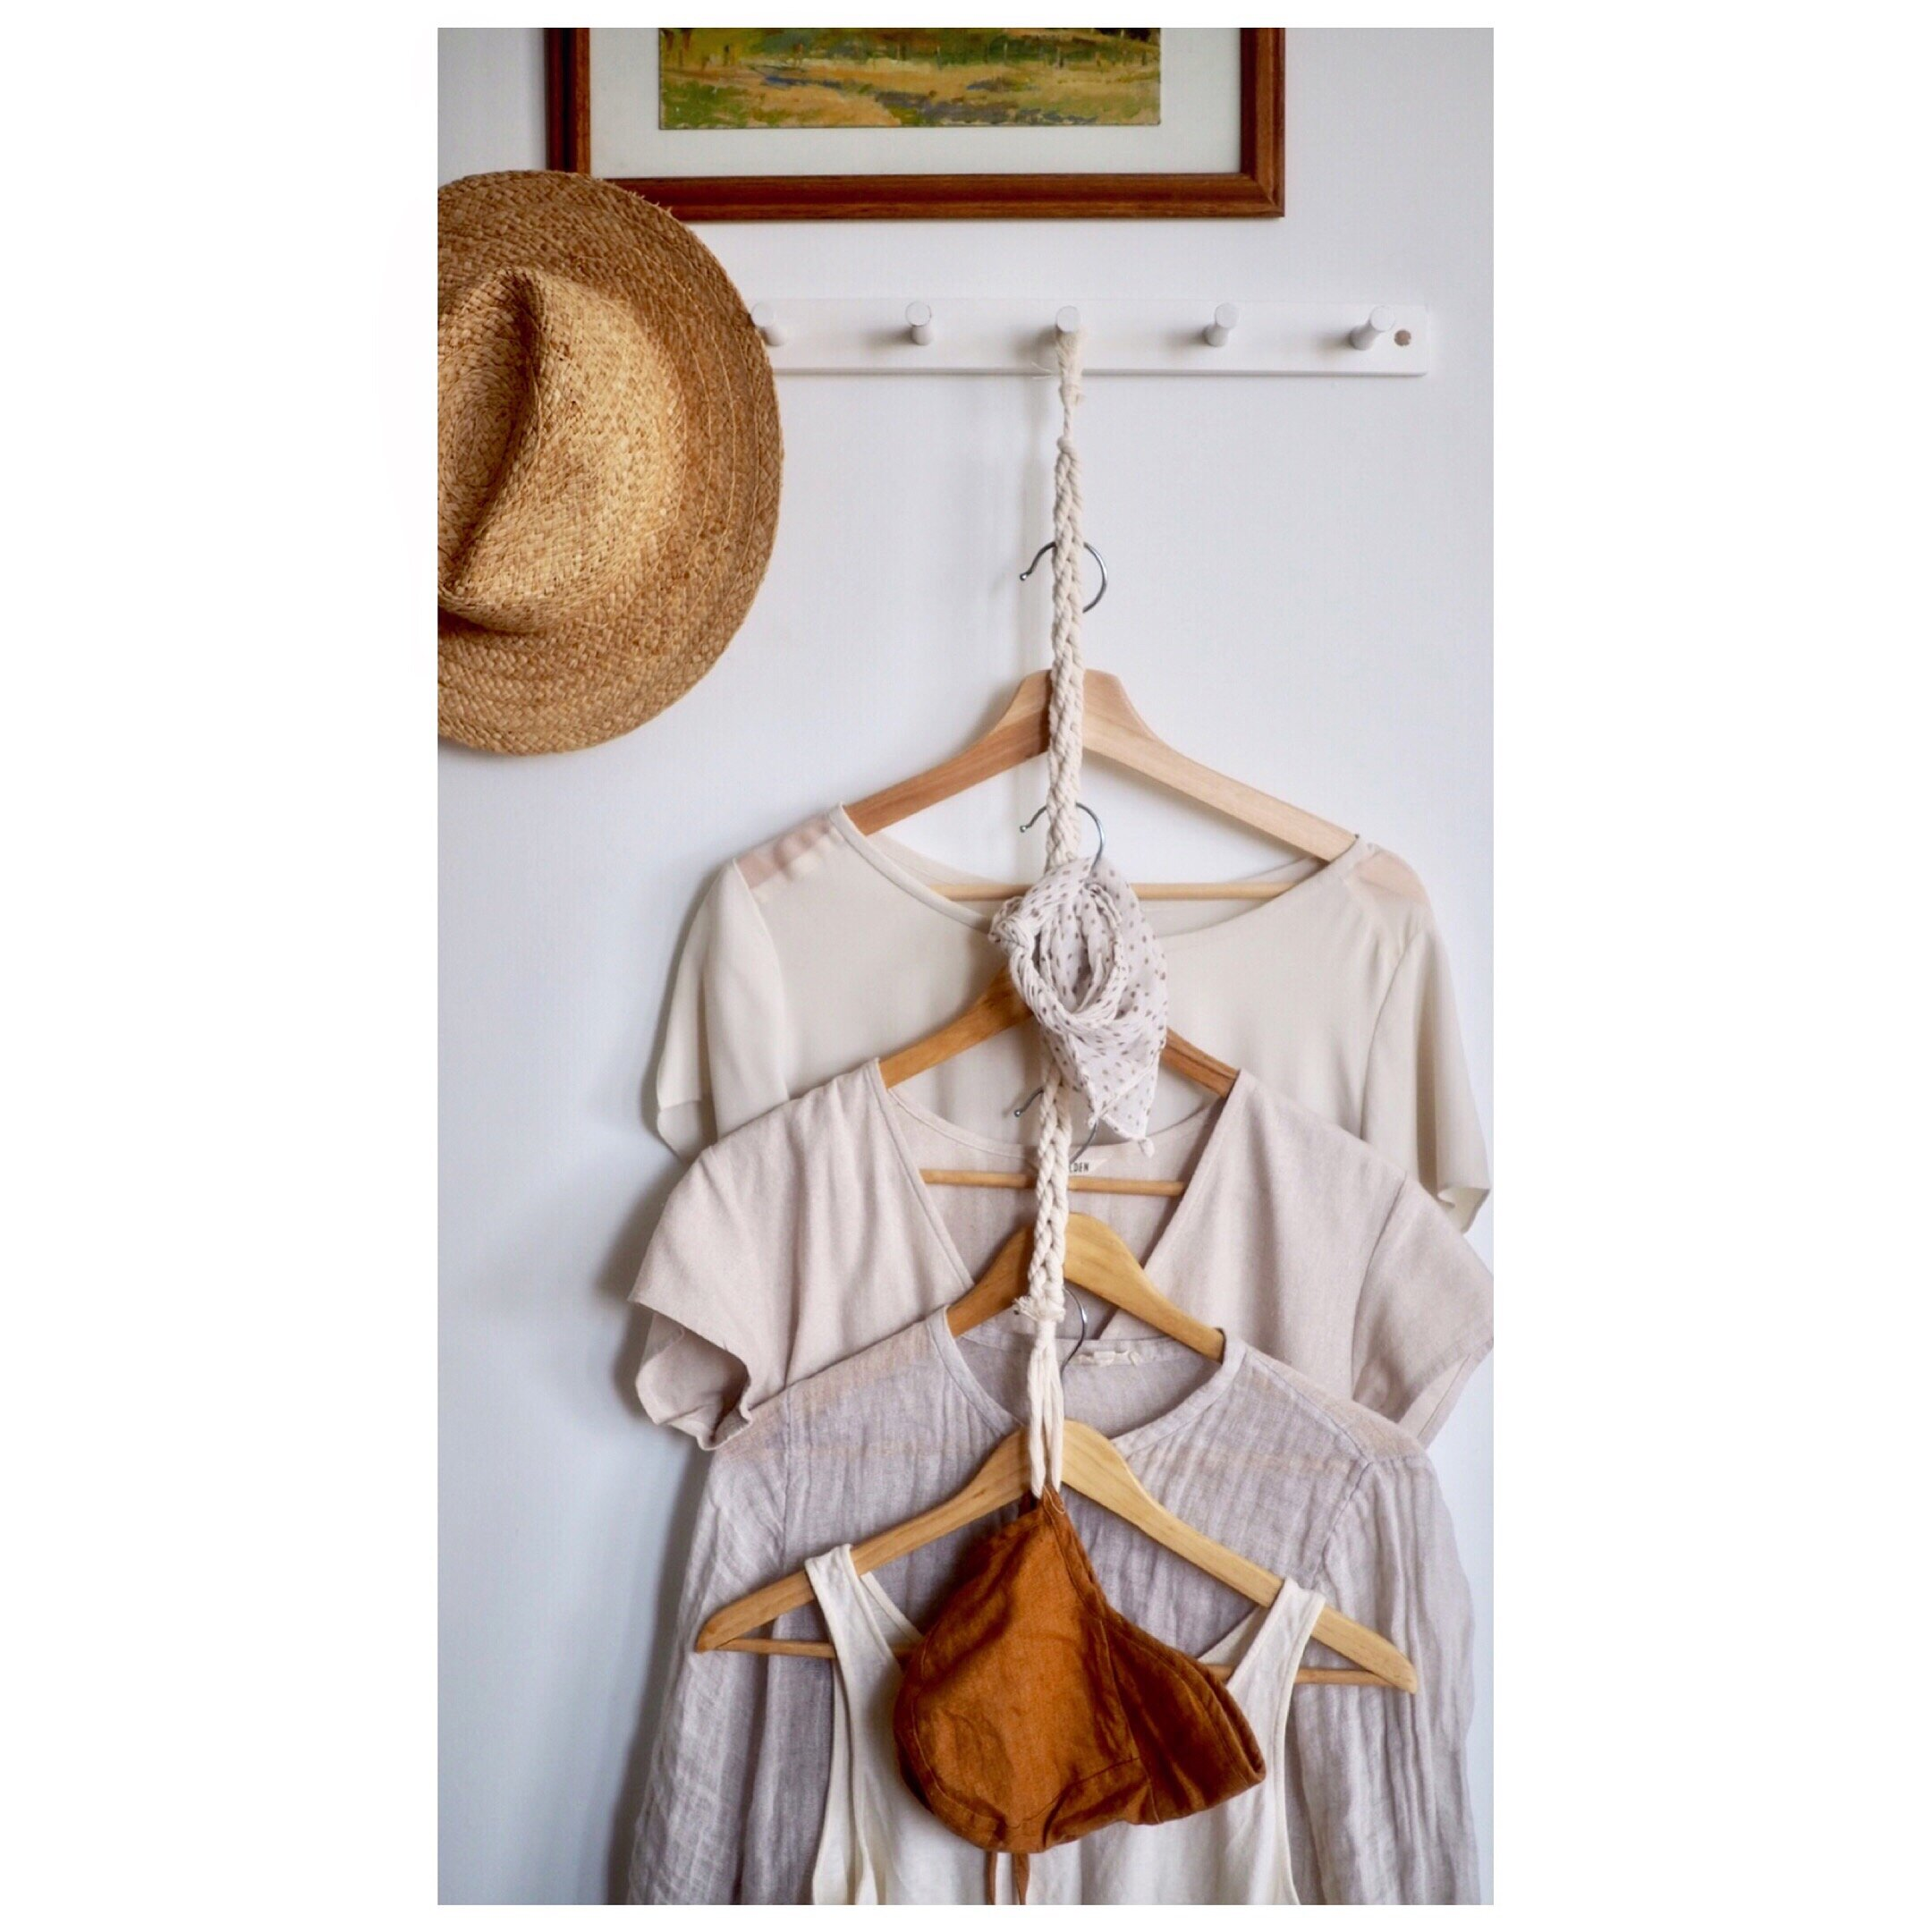 corded clothes hanger